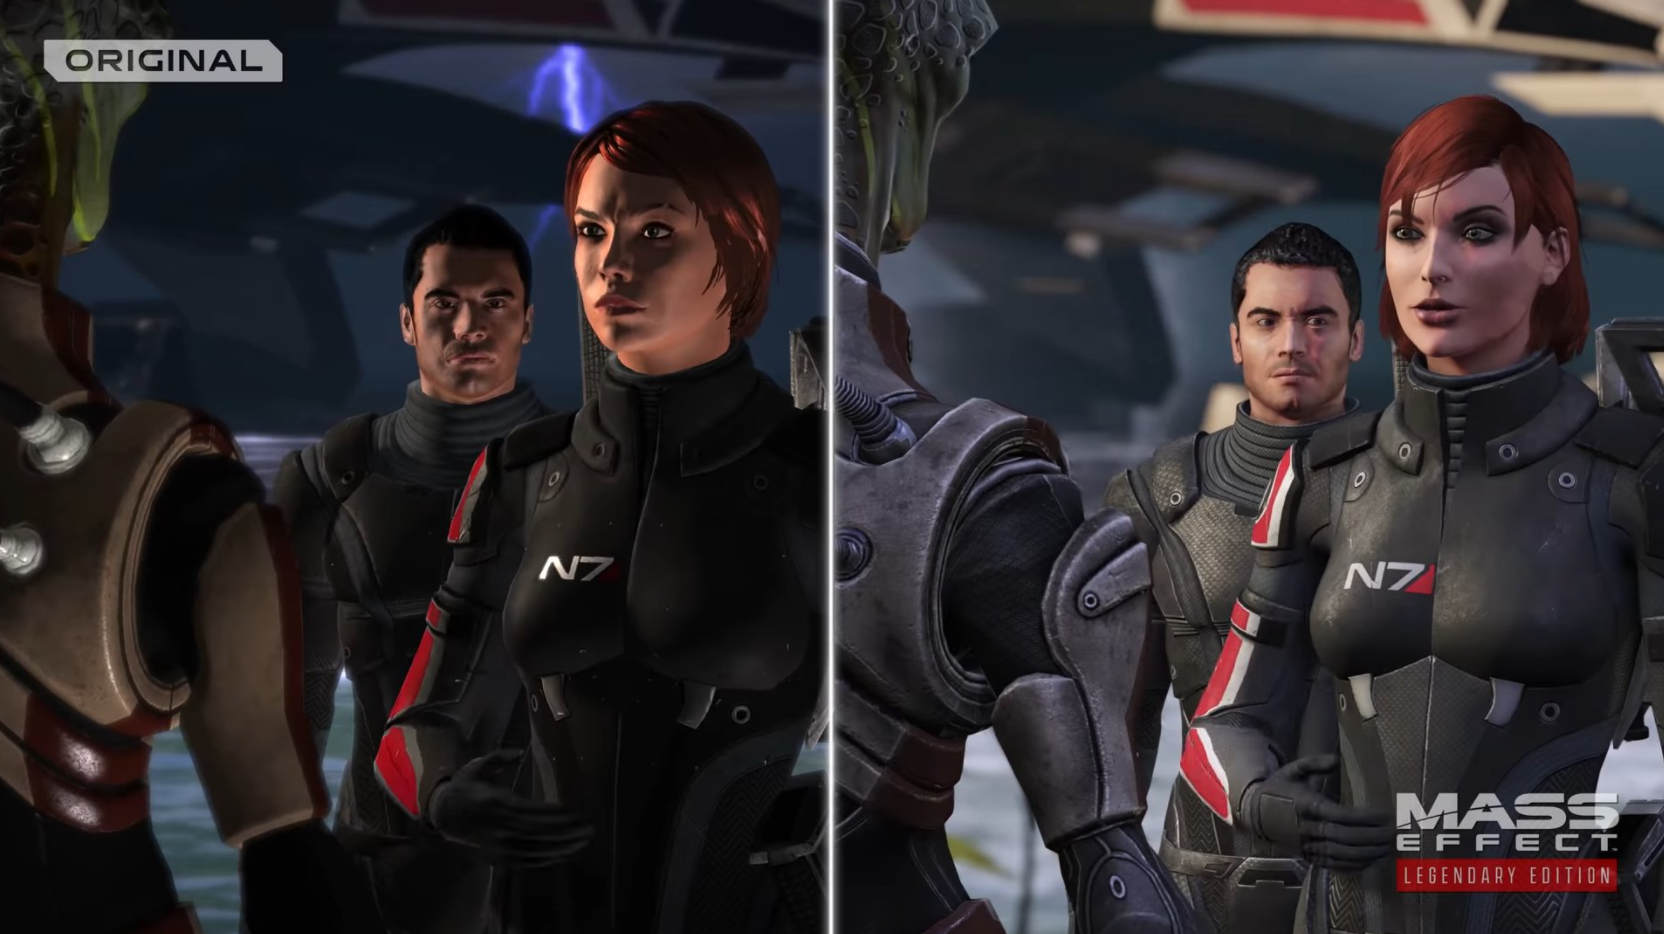 new-mass-effect-legendary-edition-trailer-showcases-visual-improvements-over-the-original-games